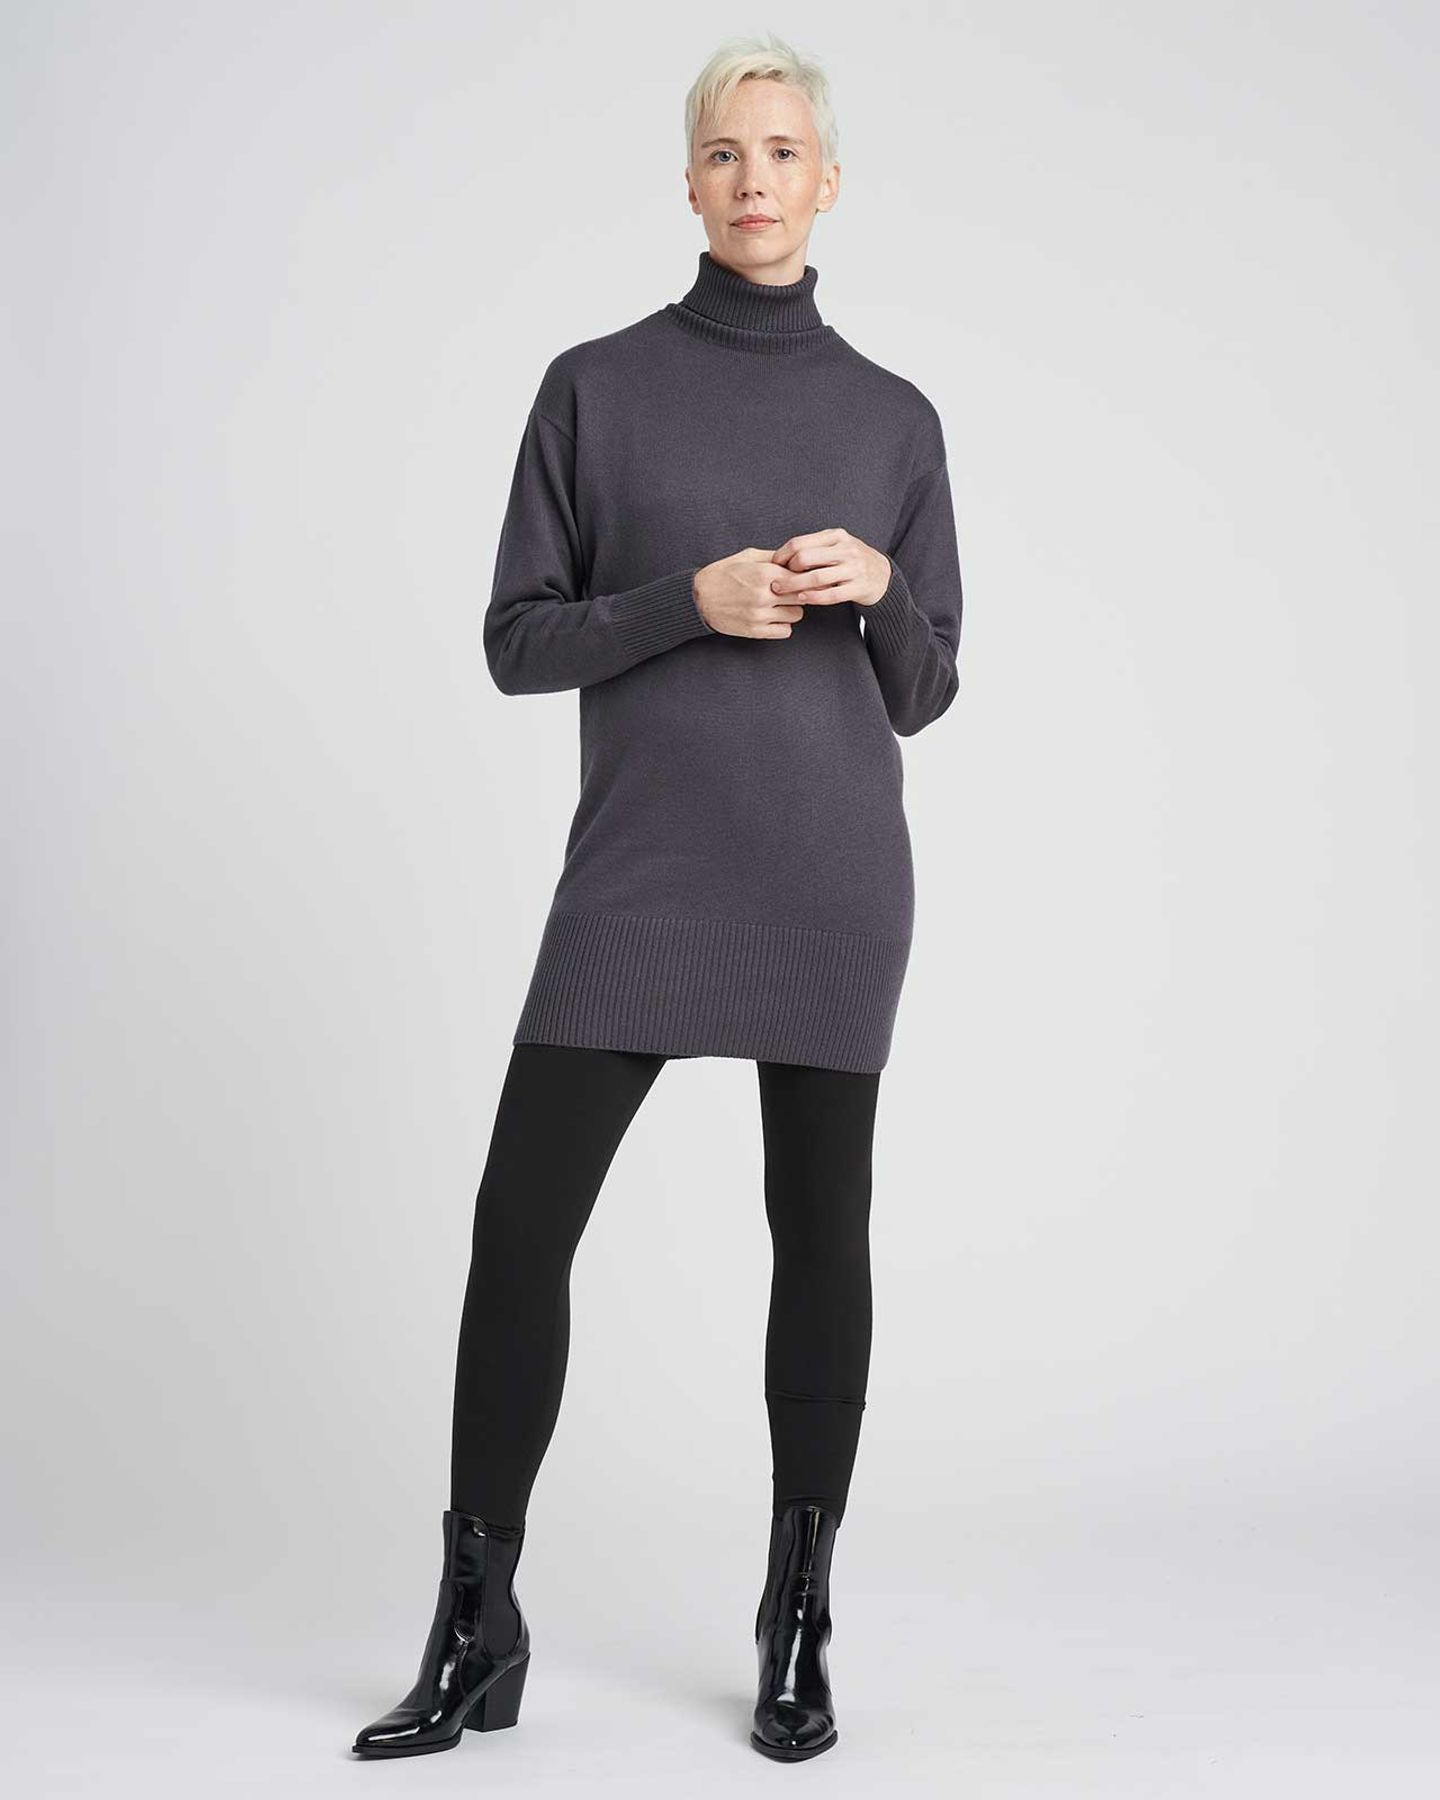 Wheaton Sweater Dress - Slate - image 0